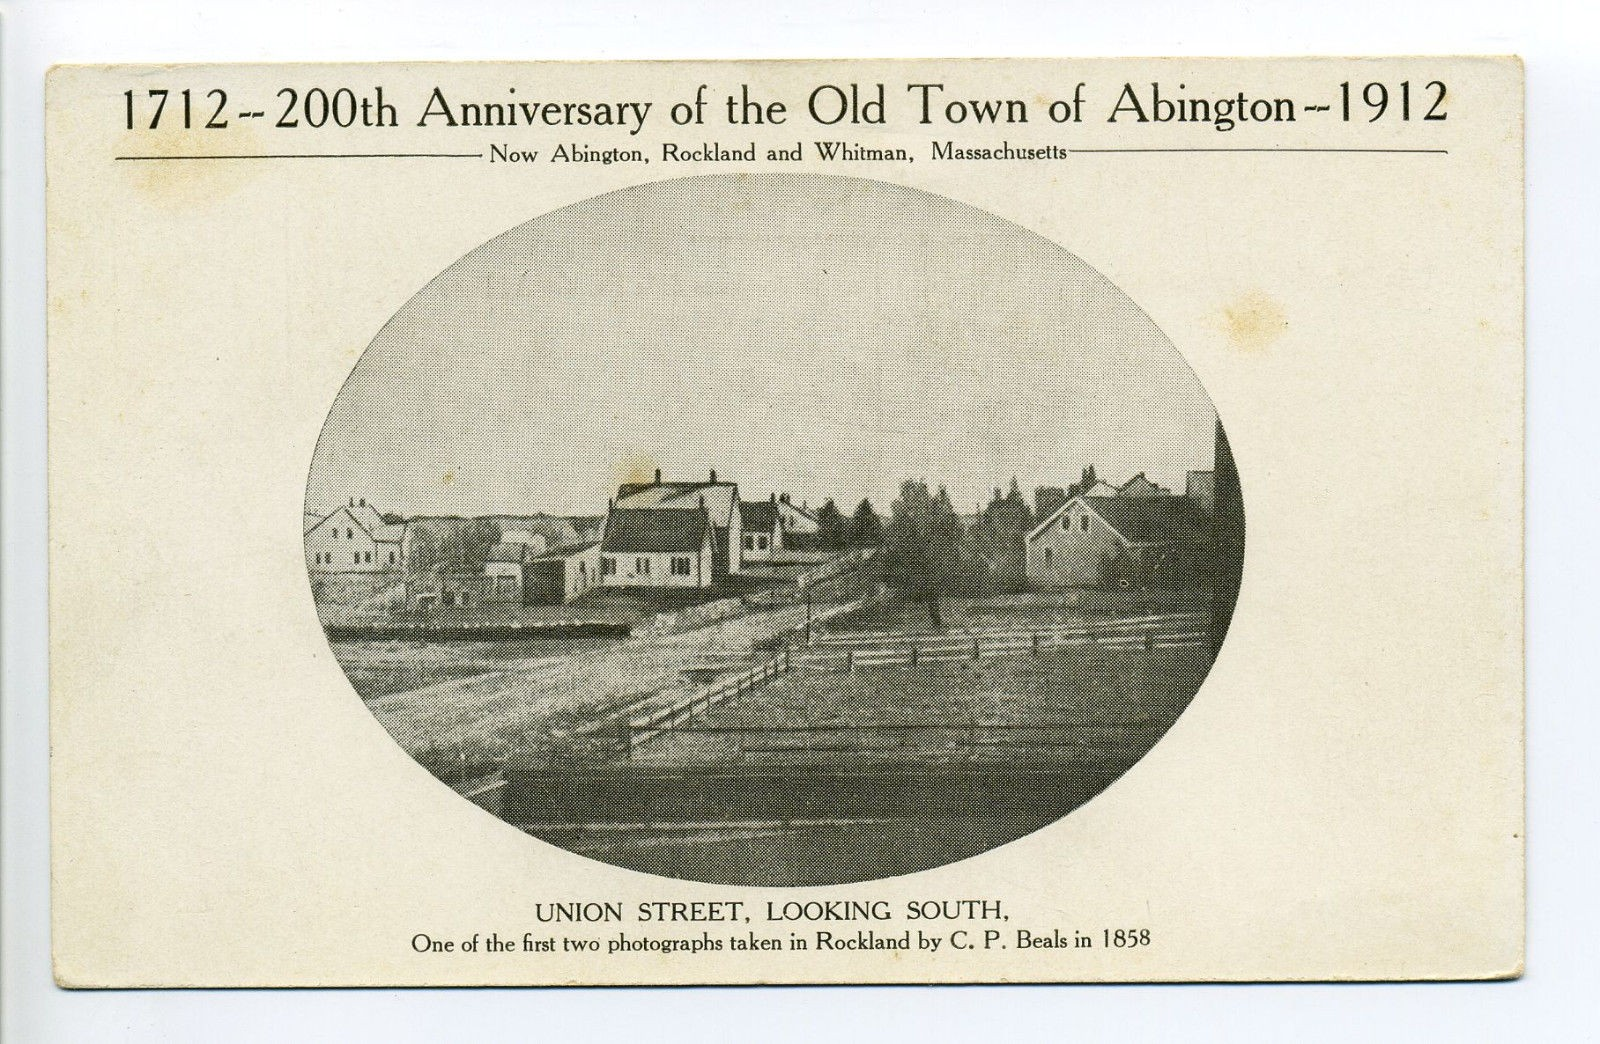 1712- 200th Anniversary of the Old Town of Abington 1912